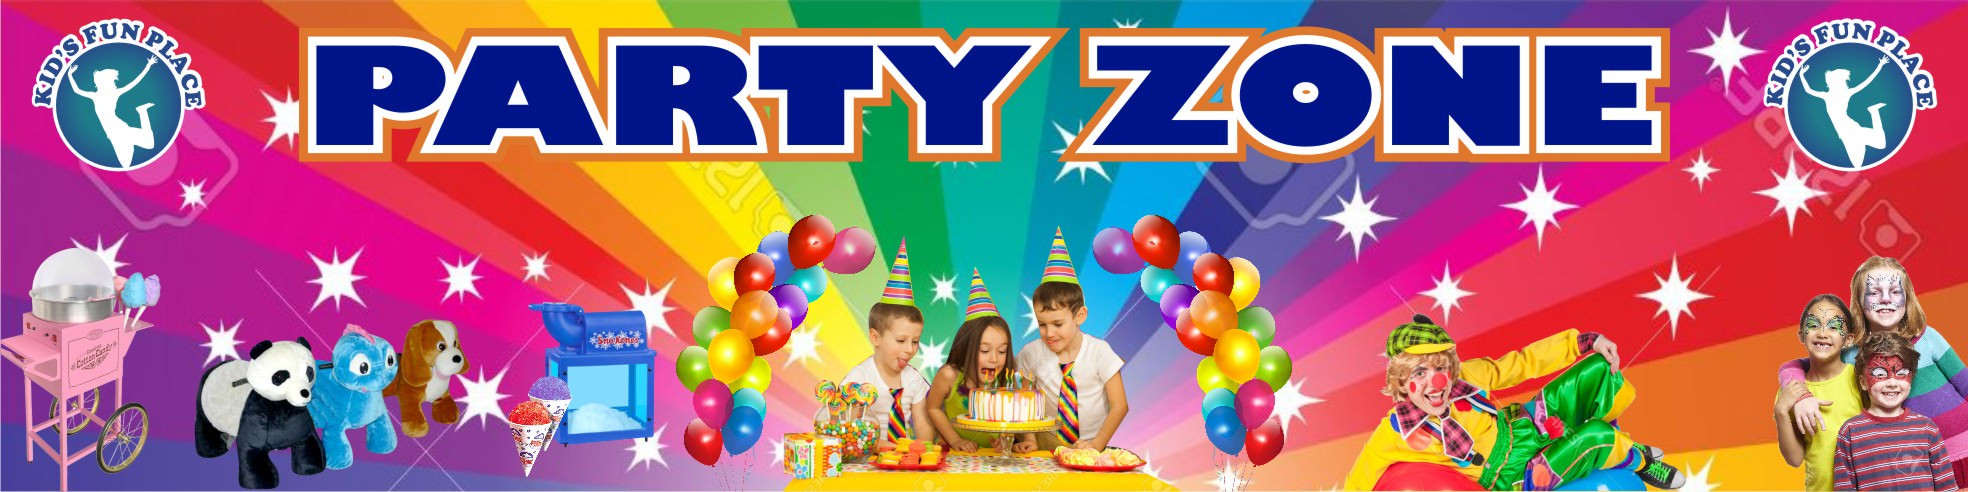 Kids Ultimate Party Zone  zBounce